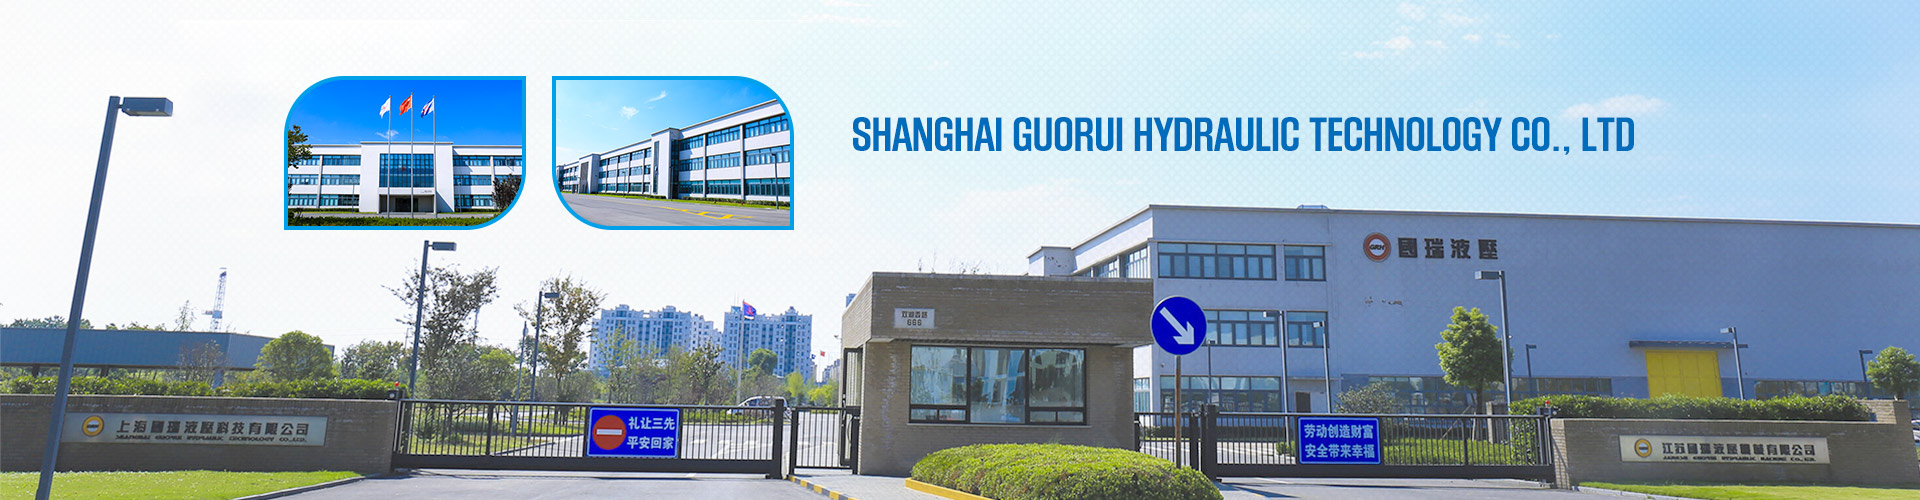 Шанхай Guorui Hydraulic Technology Co., Ltd